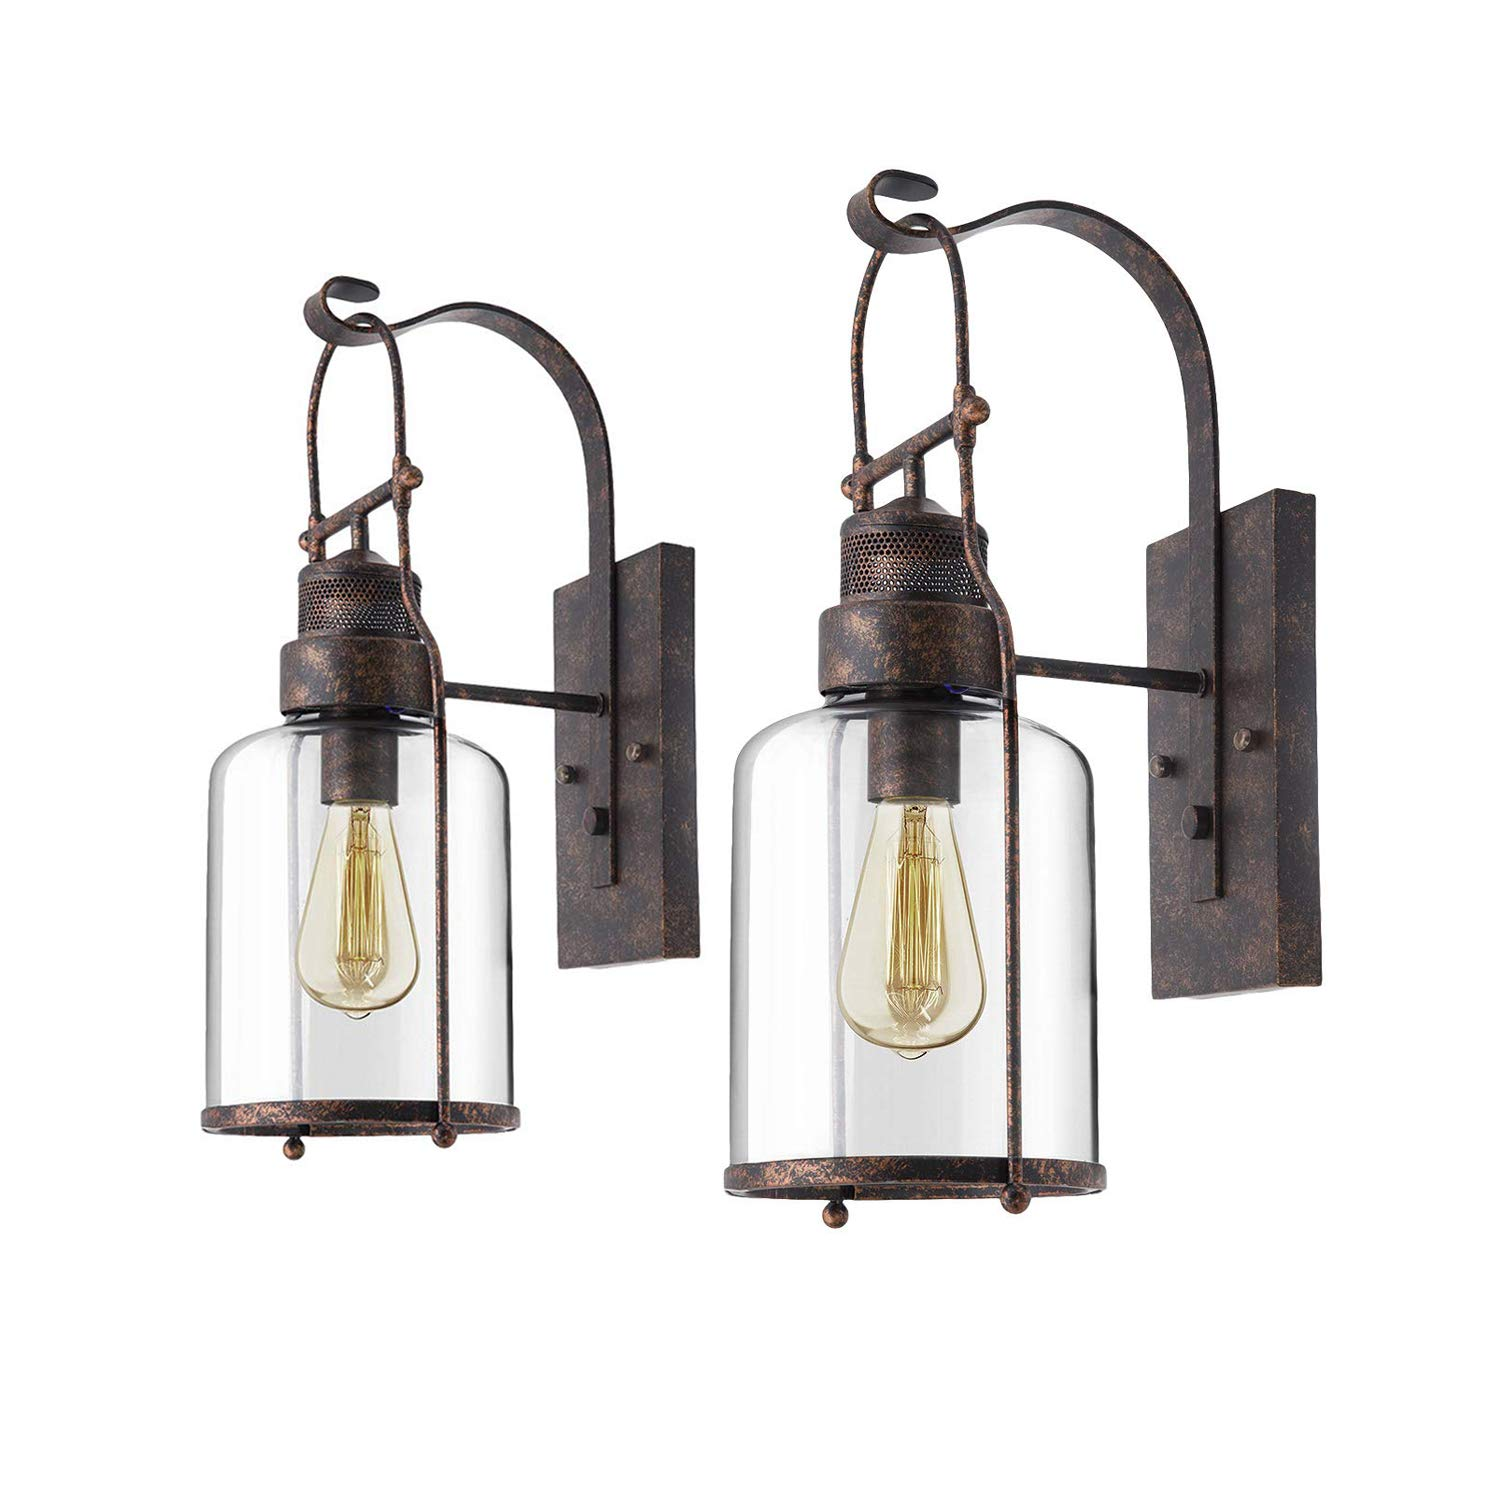 "2pcs Vintage Glass Wall Lamp, Motent Industrial Retro Iron Glass Wall Lantern in Rubbed Bronze Finished, Antique Minimalism 1-Light Cage Box Wall Sconce, 5.9"" Dia for Bedside Corridor Parlor - Rustic"